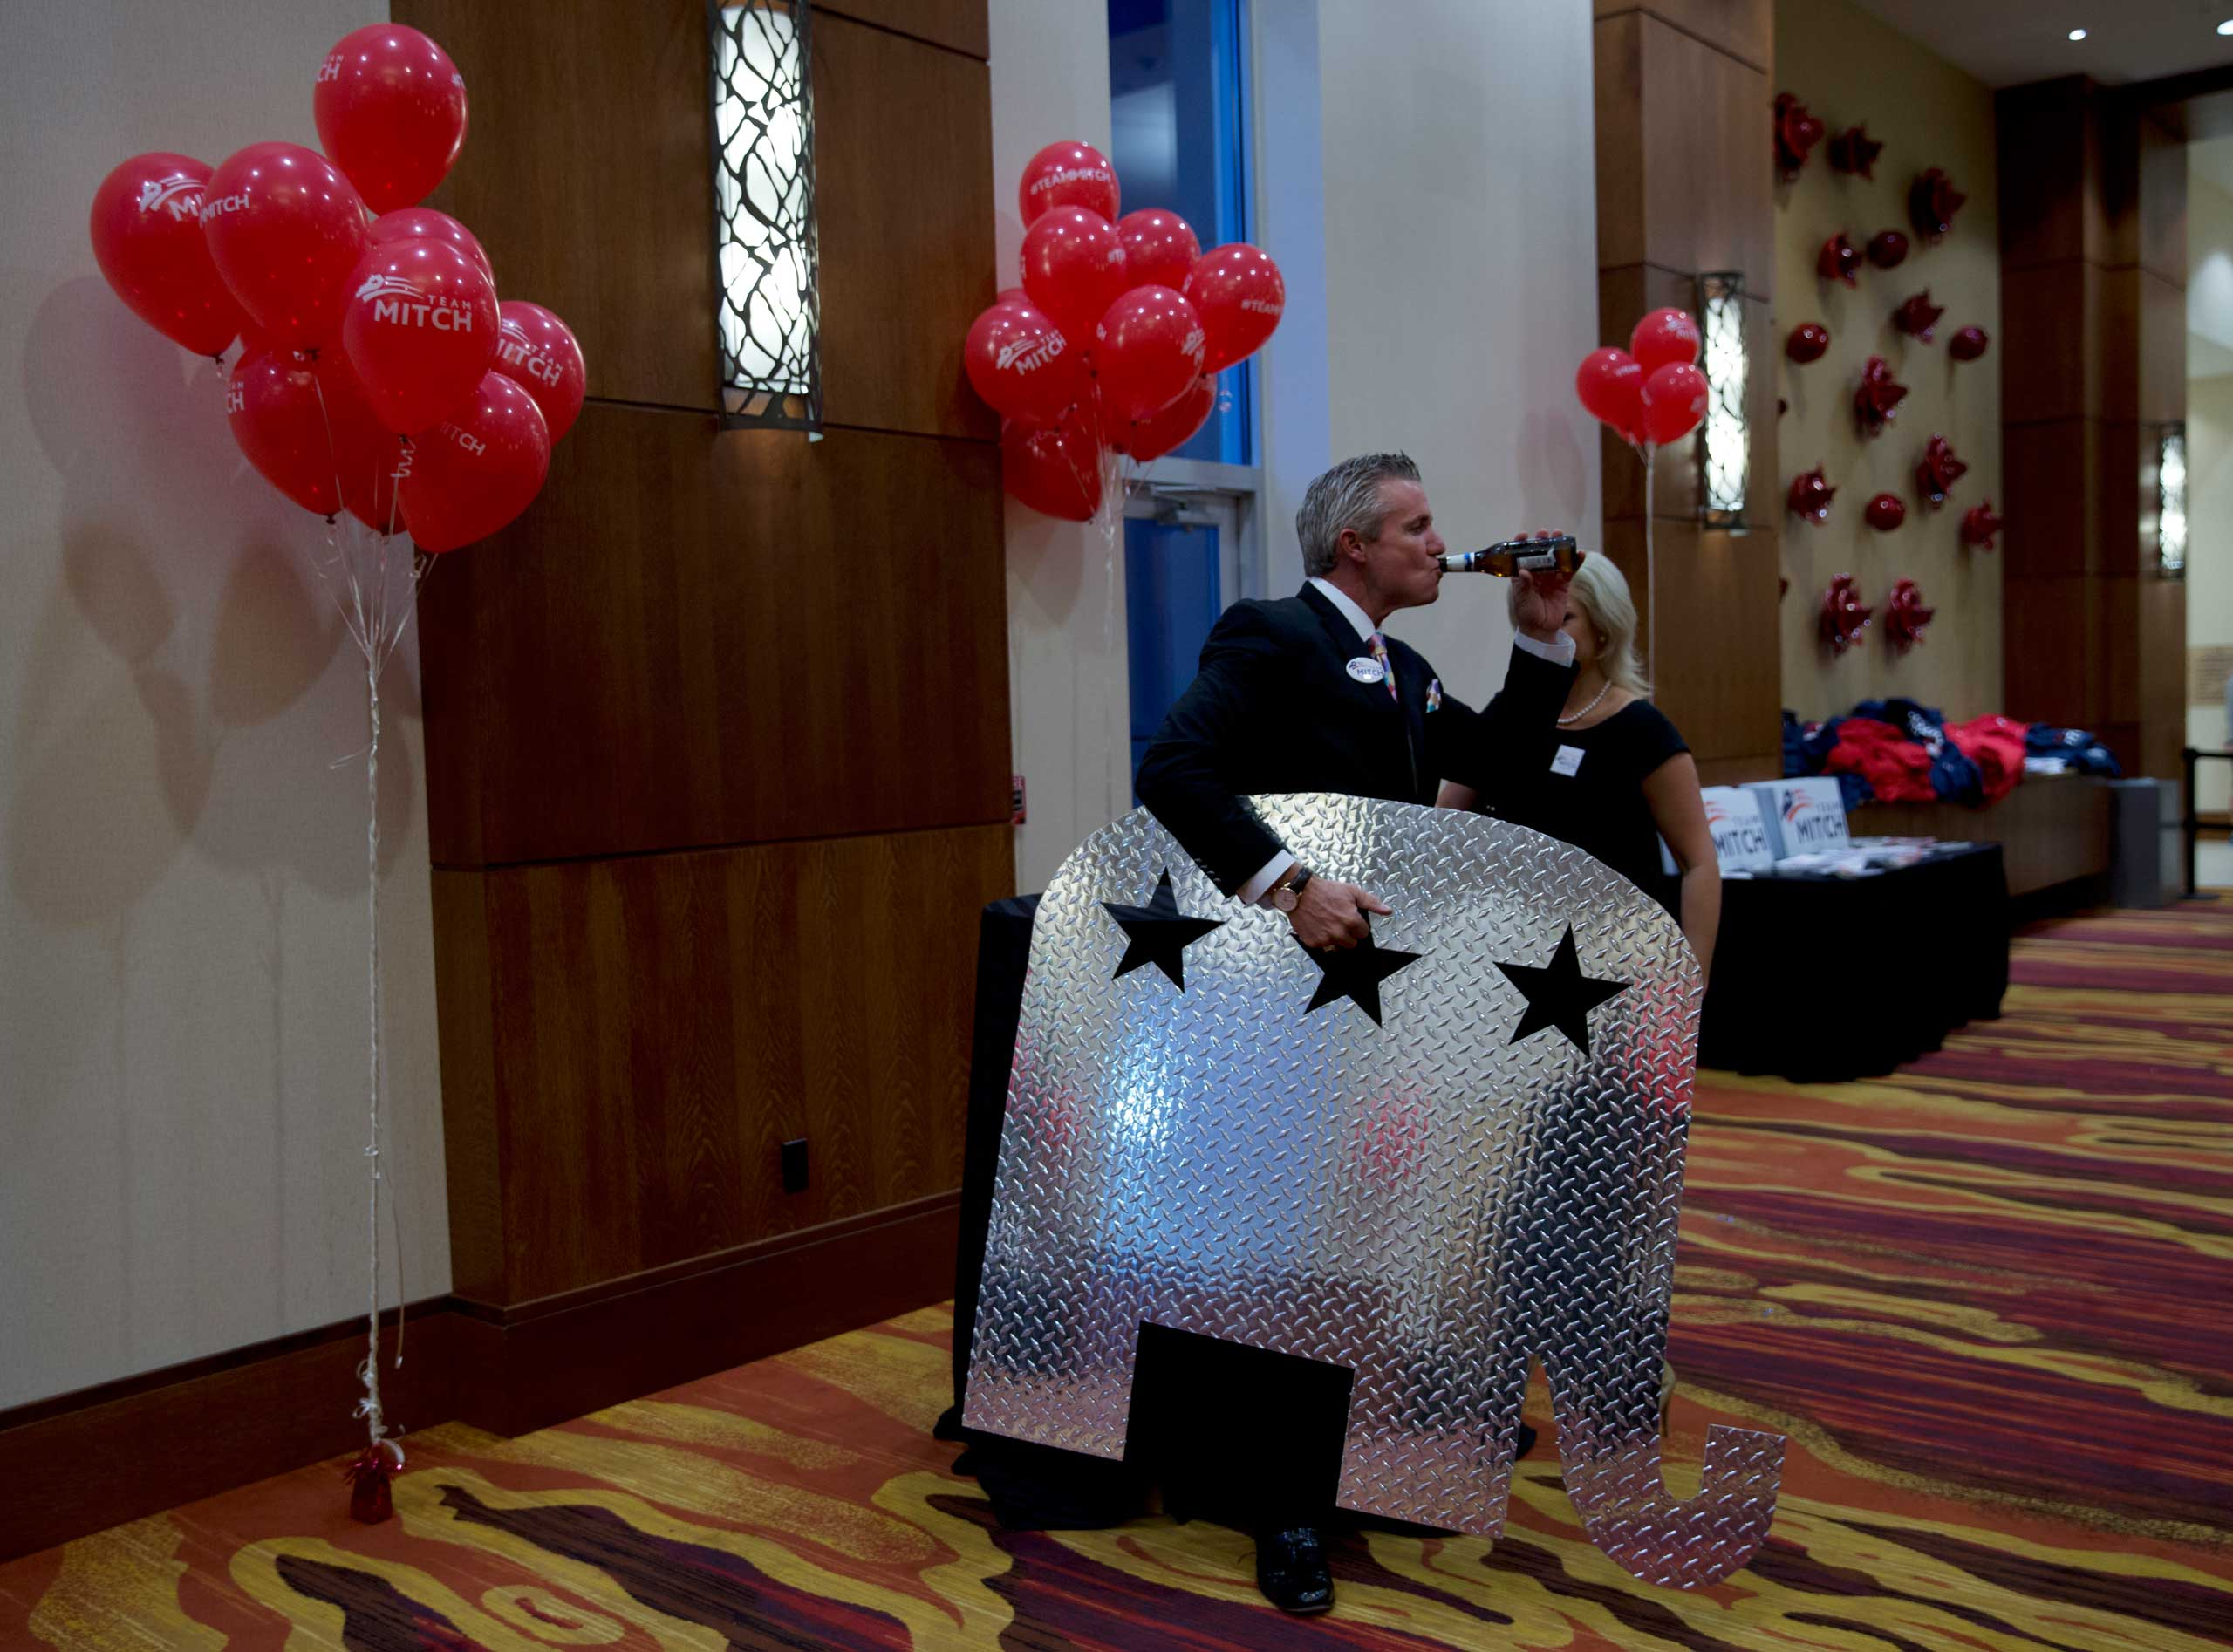 Supporters gather to celebrate incumbent Sen. Mitch McConnell's victory over Alison Lundergan Grimes at the Louisville Marriott East Hotel in Louisville, Ky. on Nov. 4, 2014. With the Republican takeover of the Senate, McConnell is expected to become the new Senate Majority Leader.